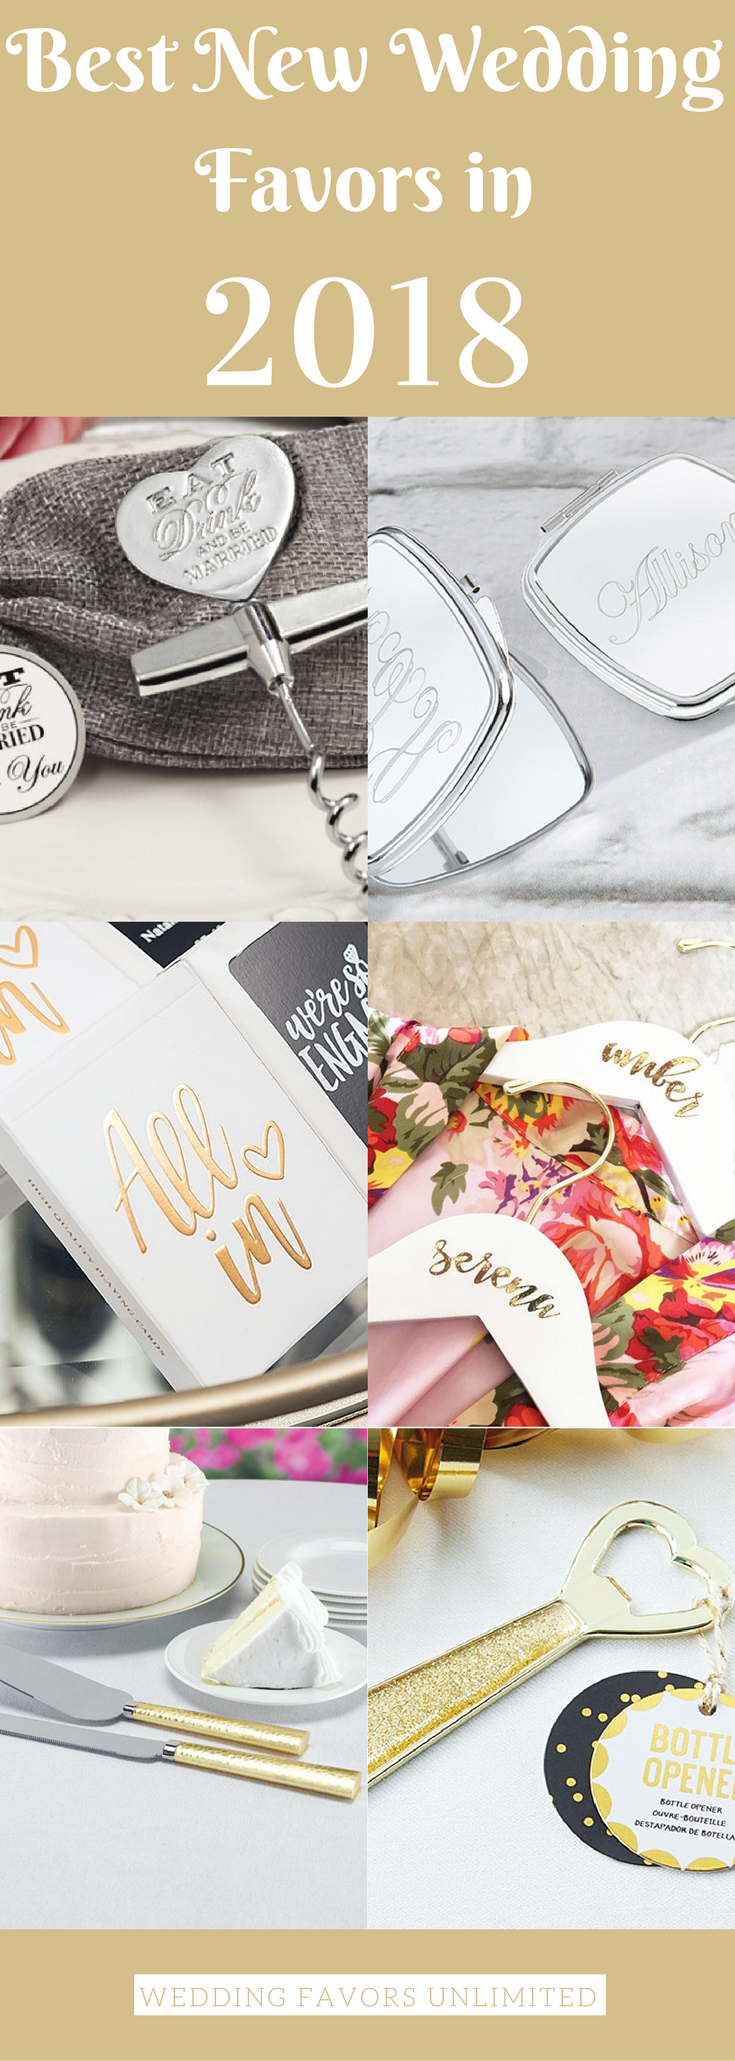 The Best New Wedding Favors in 2018 to make your wedding next year ...